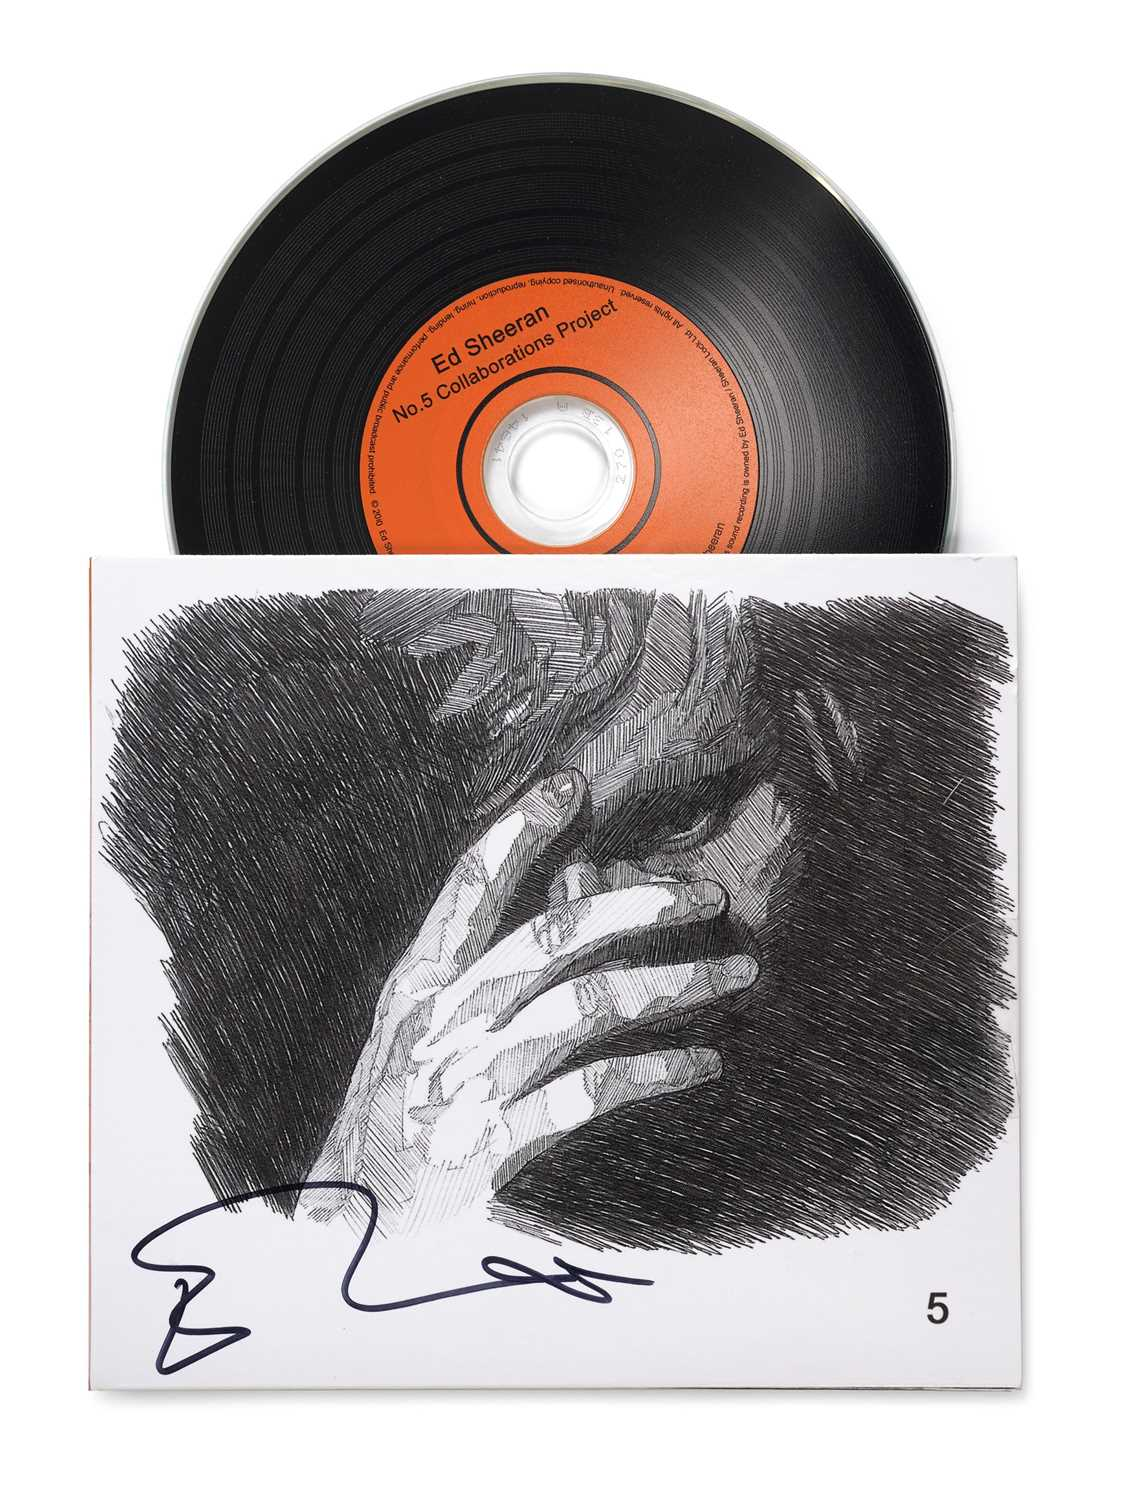 Signed Ed Sheeran No.5 Collaborations CD 2011 An EP released independently by Ed Sheeran in